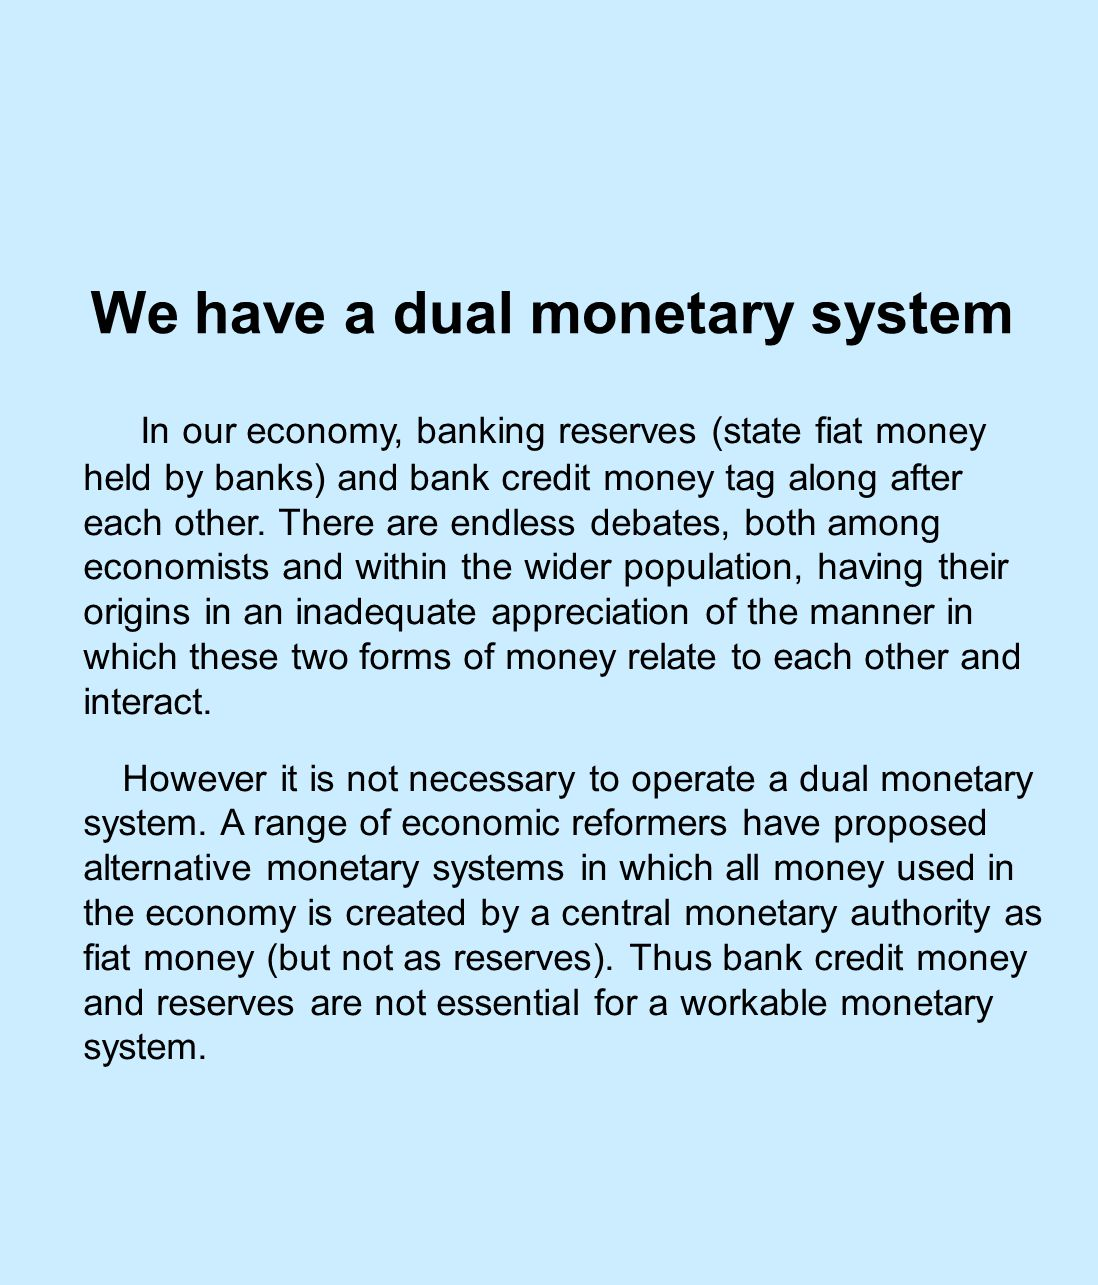 We have a dual monetary system In our economy, banking reserves (state fiat money held by banks) and bank credit money tag along after each other.